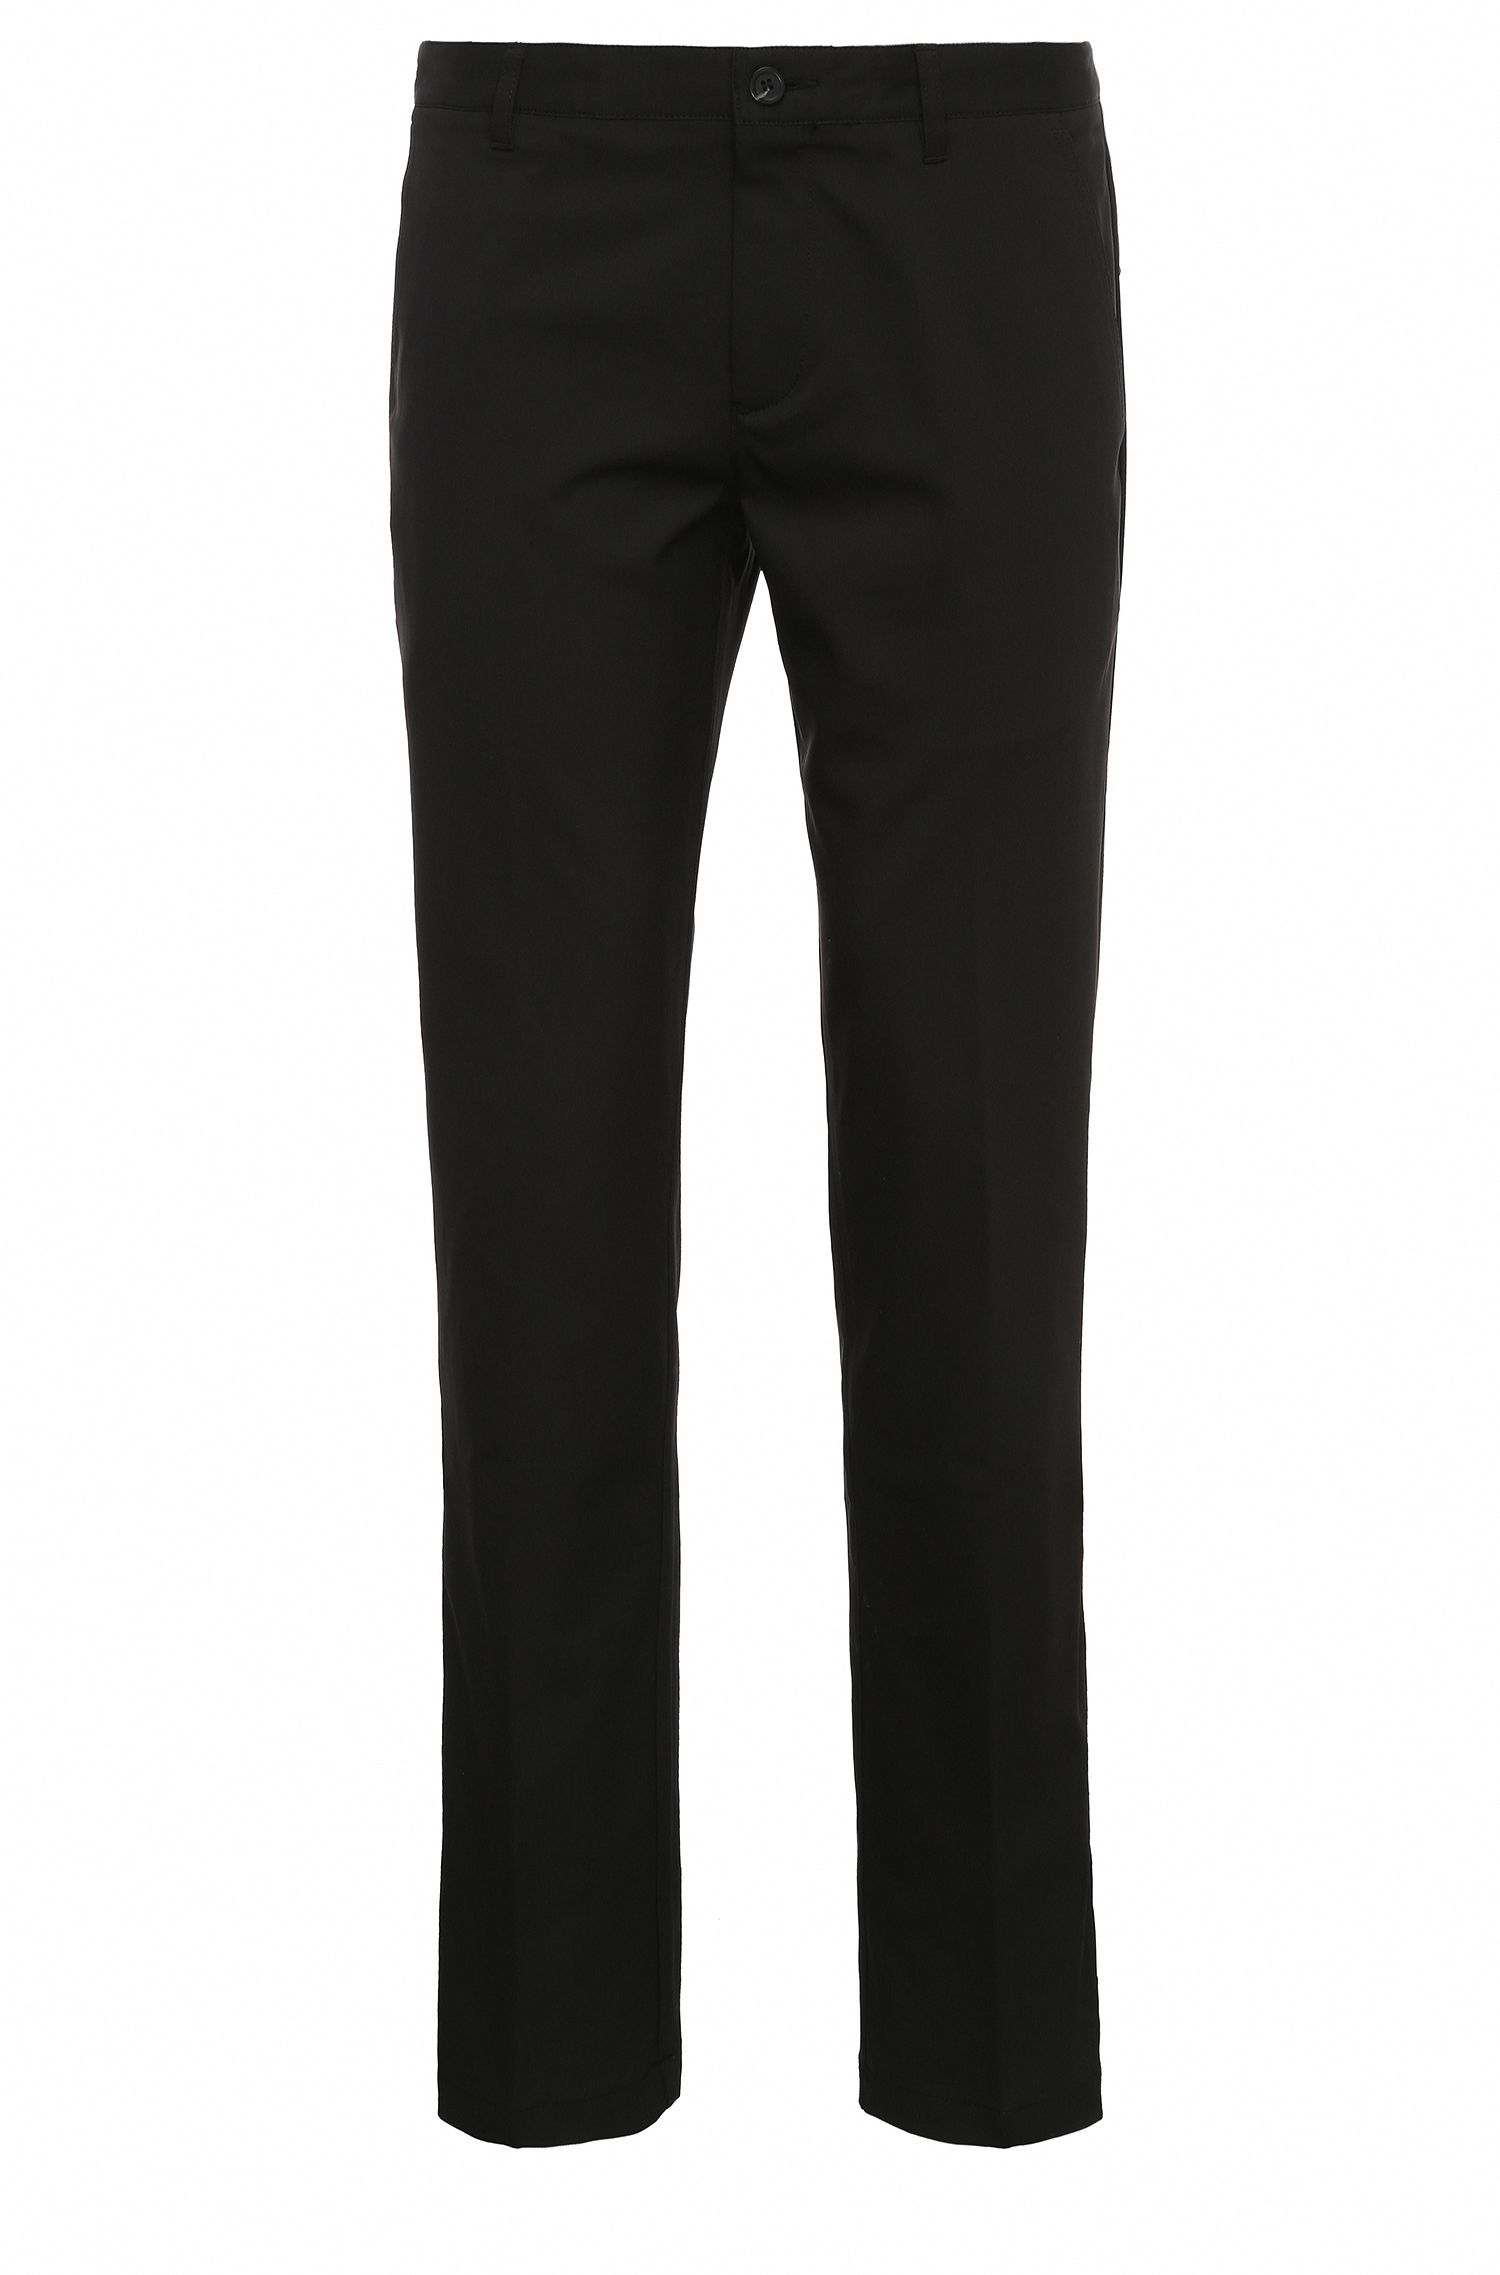 CoolMax Performance Golf Pants, Slim Fit | Hakan